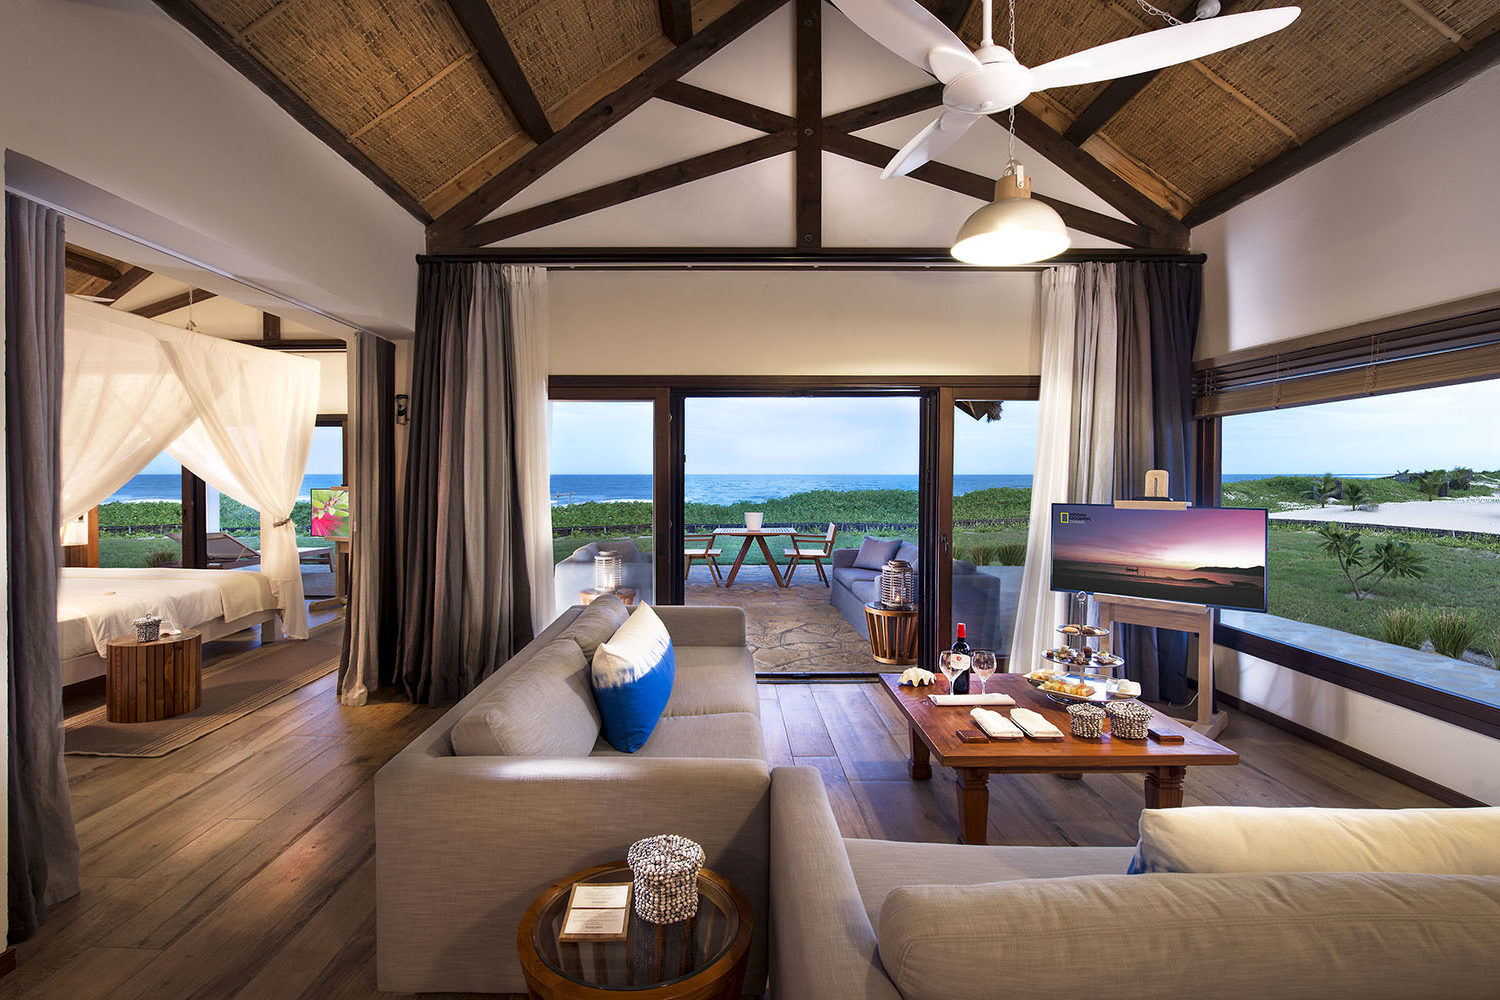 diamonds mequfi beach resort mozambique-lodges-pemba-zambia-in-style-paradise-remote-location-dining-drinks-views